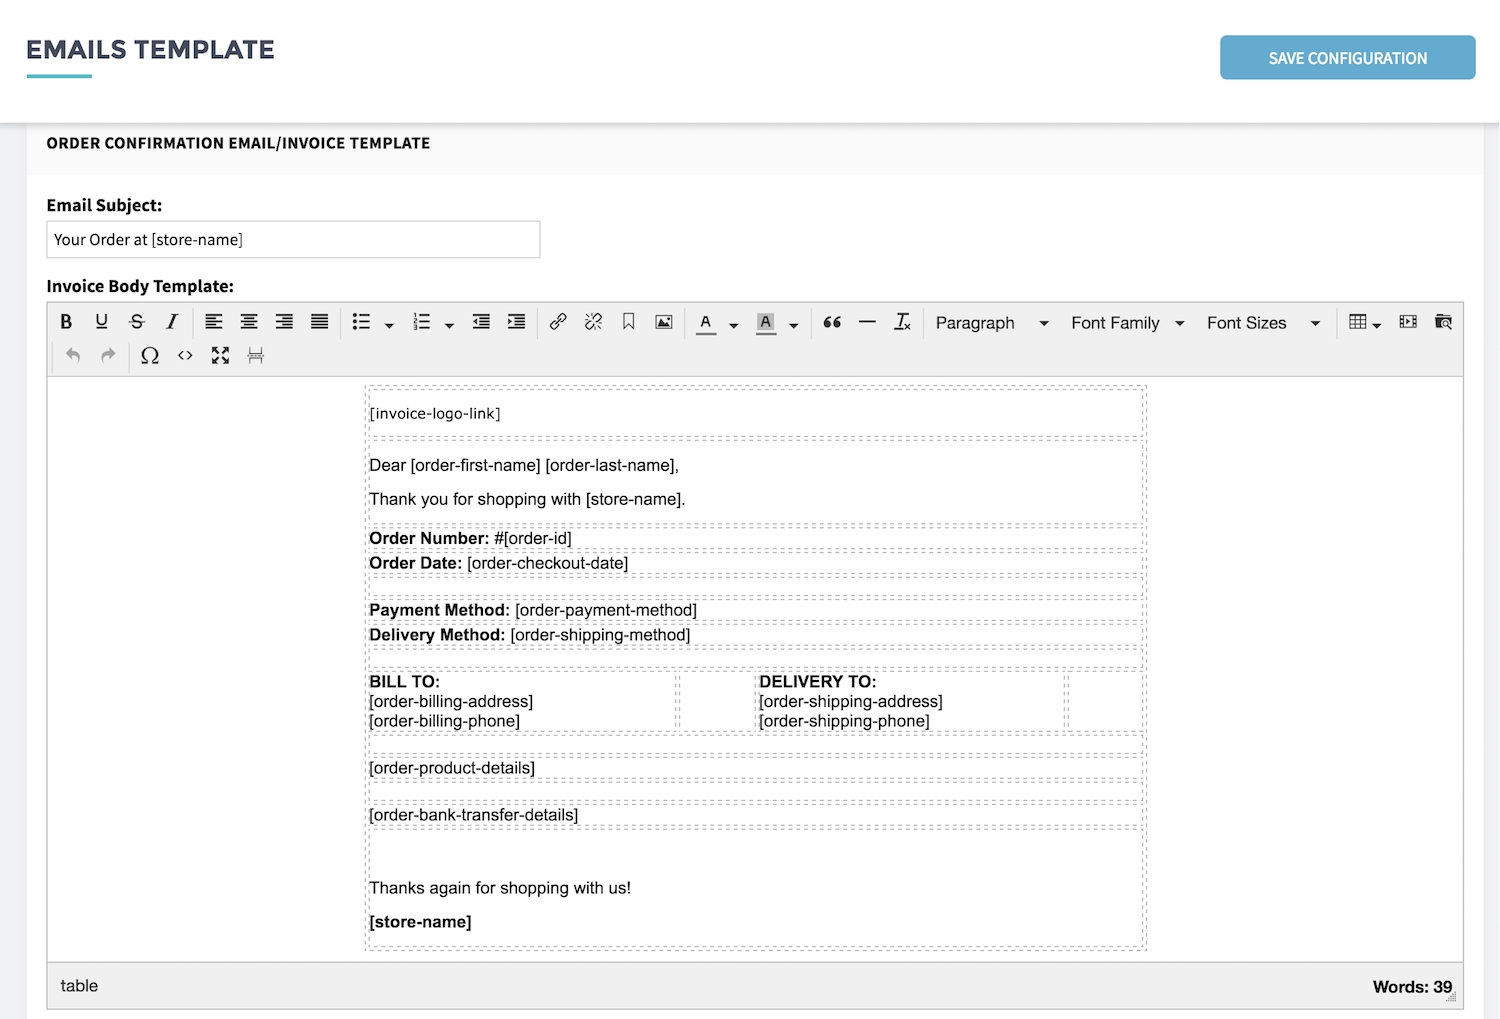 invoice template for email setup invoice and email template shopcada 1500 X 1019